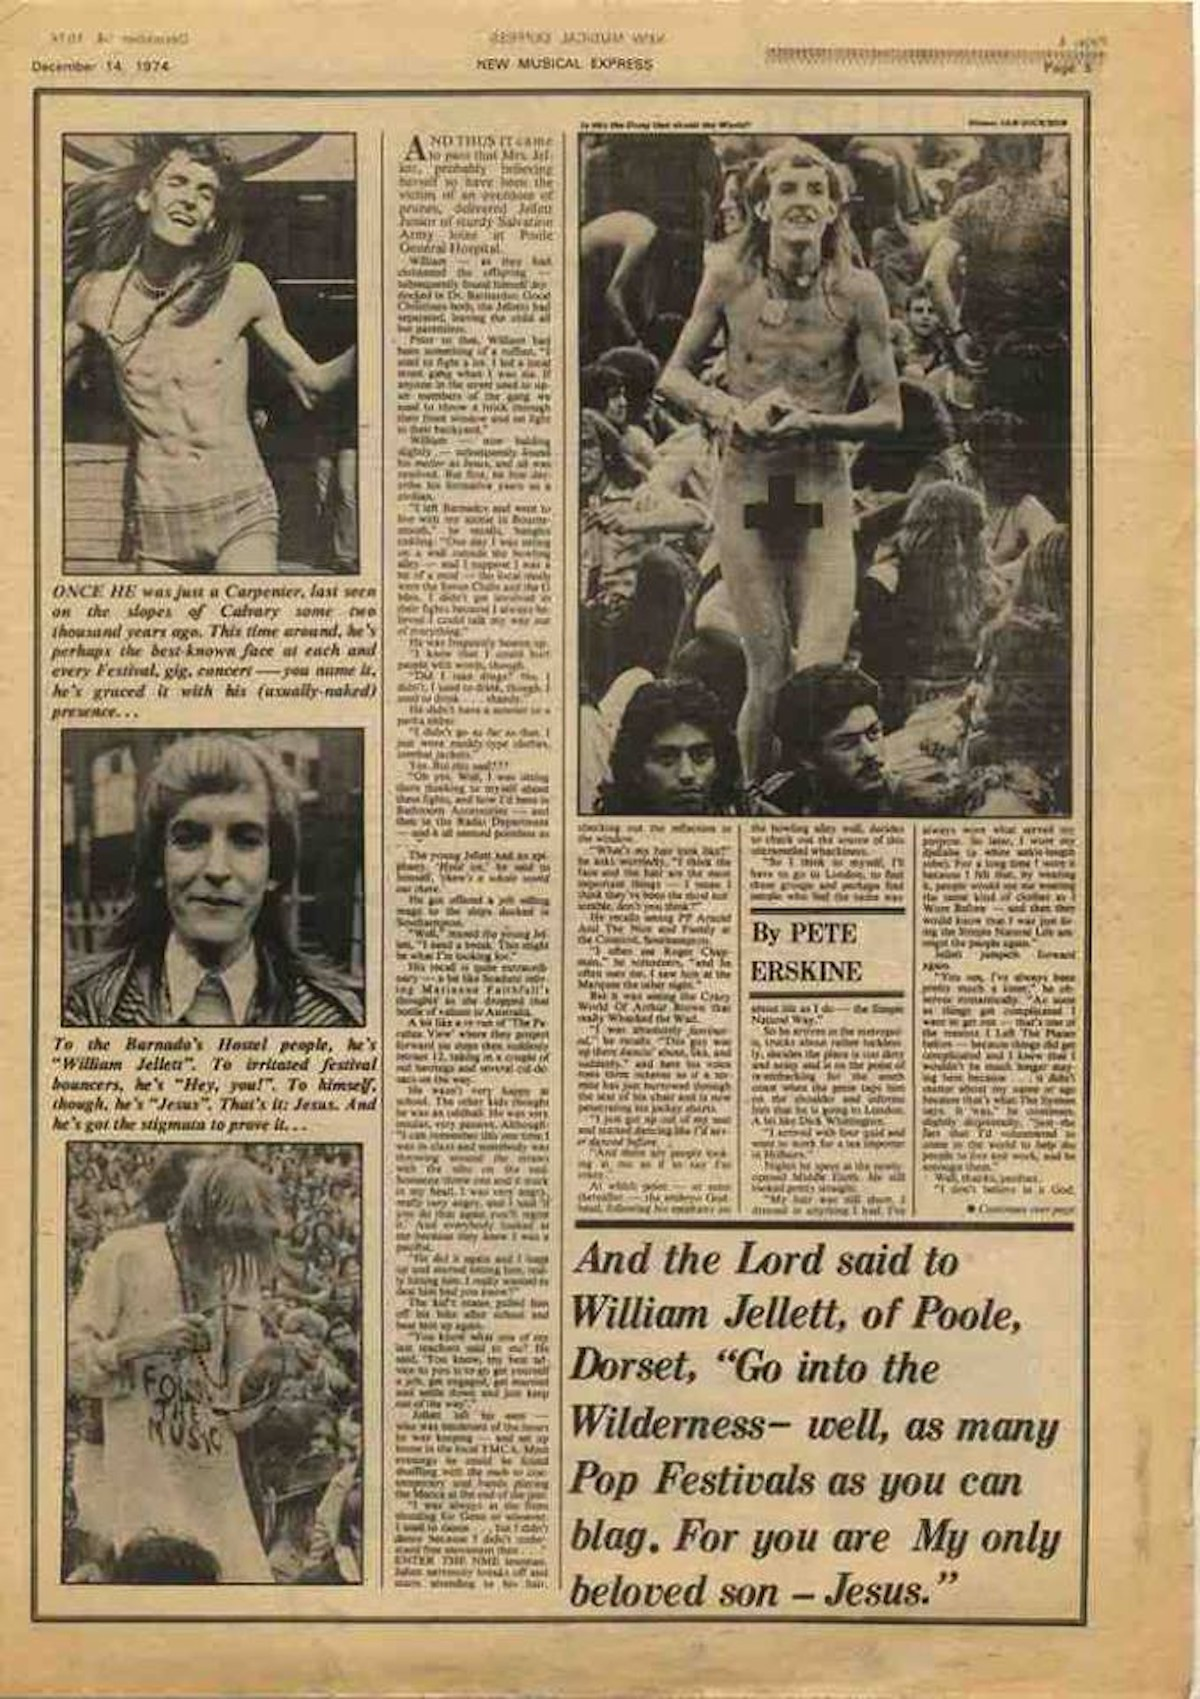 The NME profile of Jellett, 14th December 1974